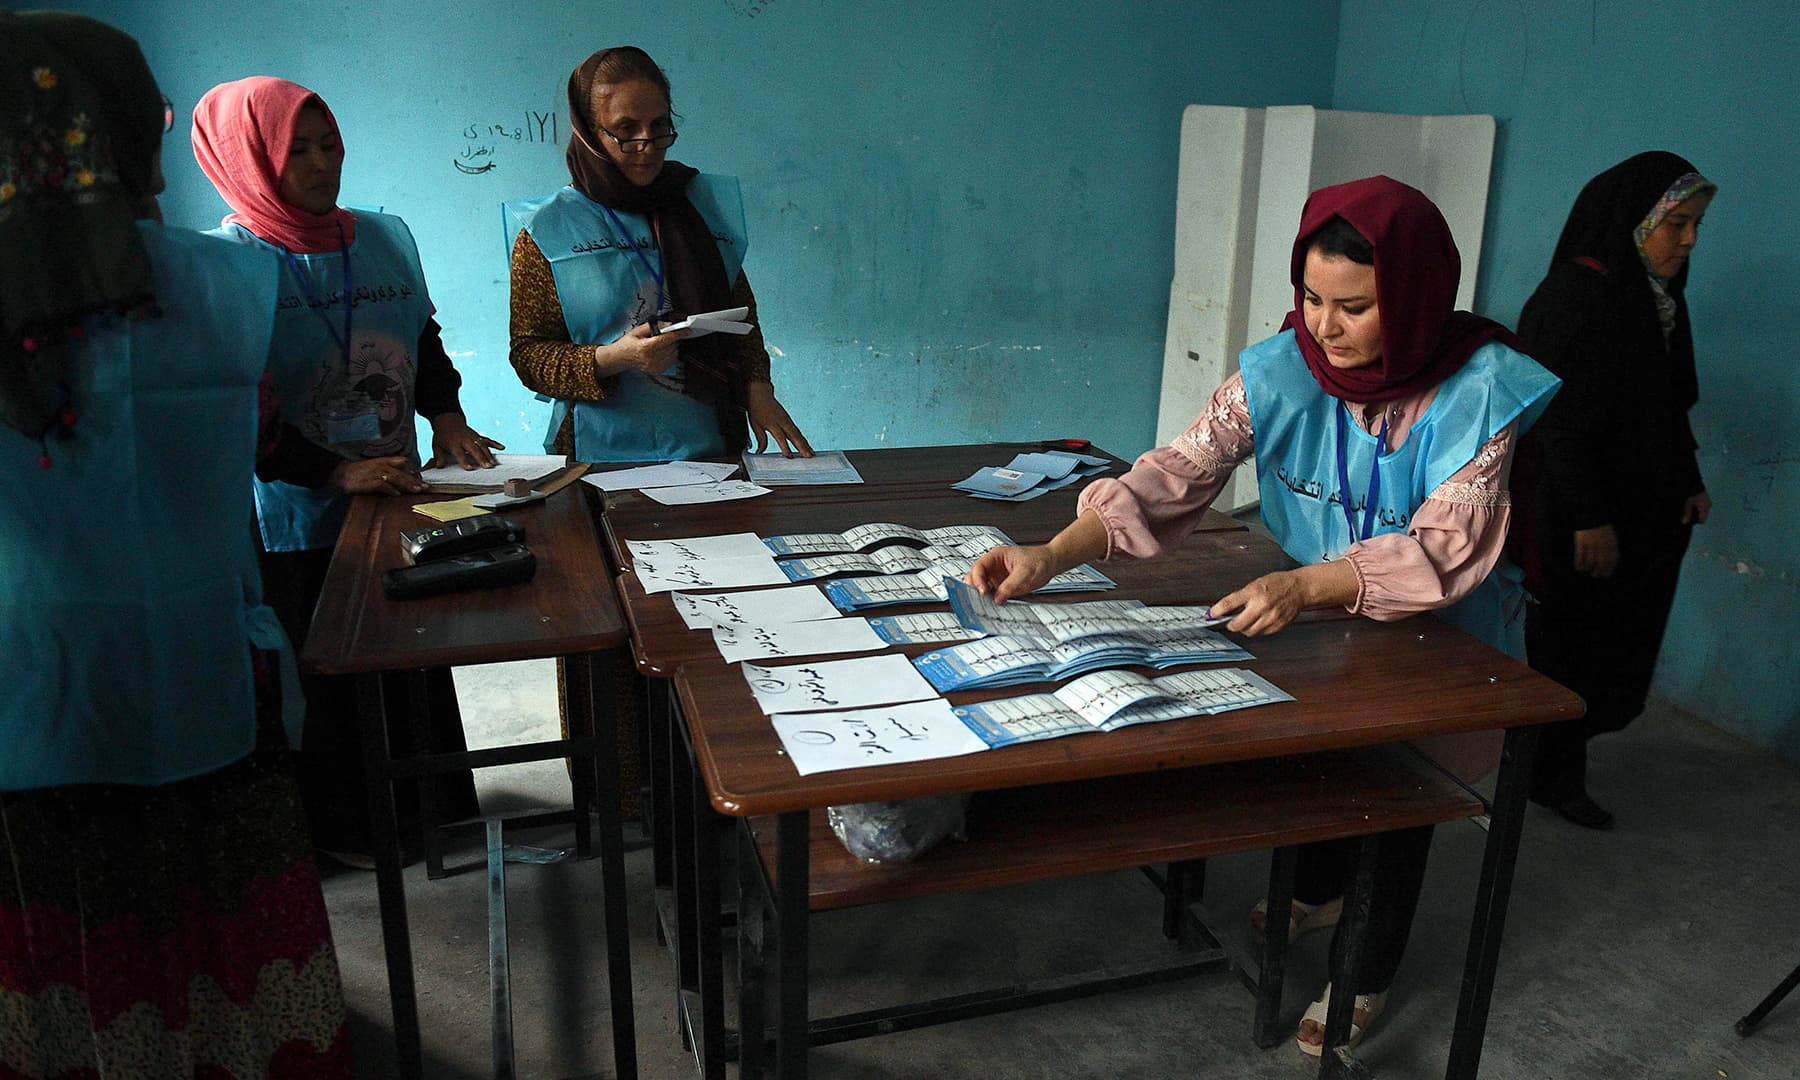 Afghan Independent Election Commission (IEC) officials count ballot papers after polling stations closed, in Mazar-i- Sharif. — AFP